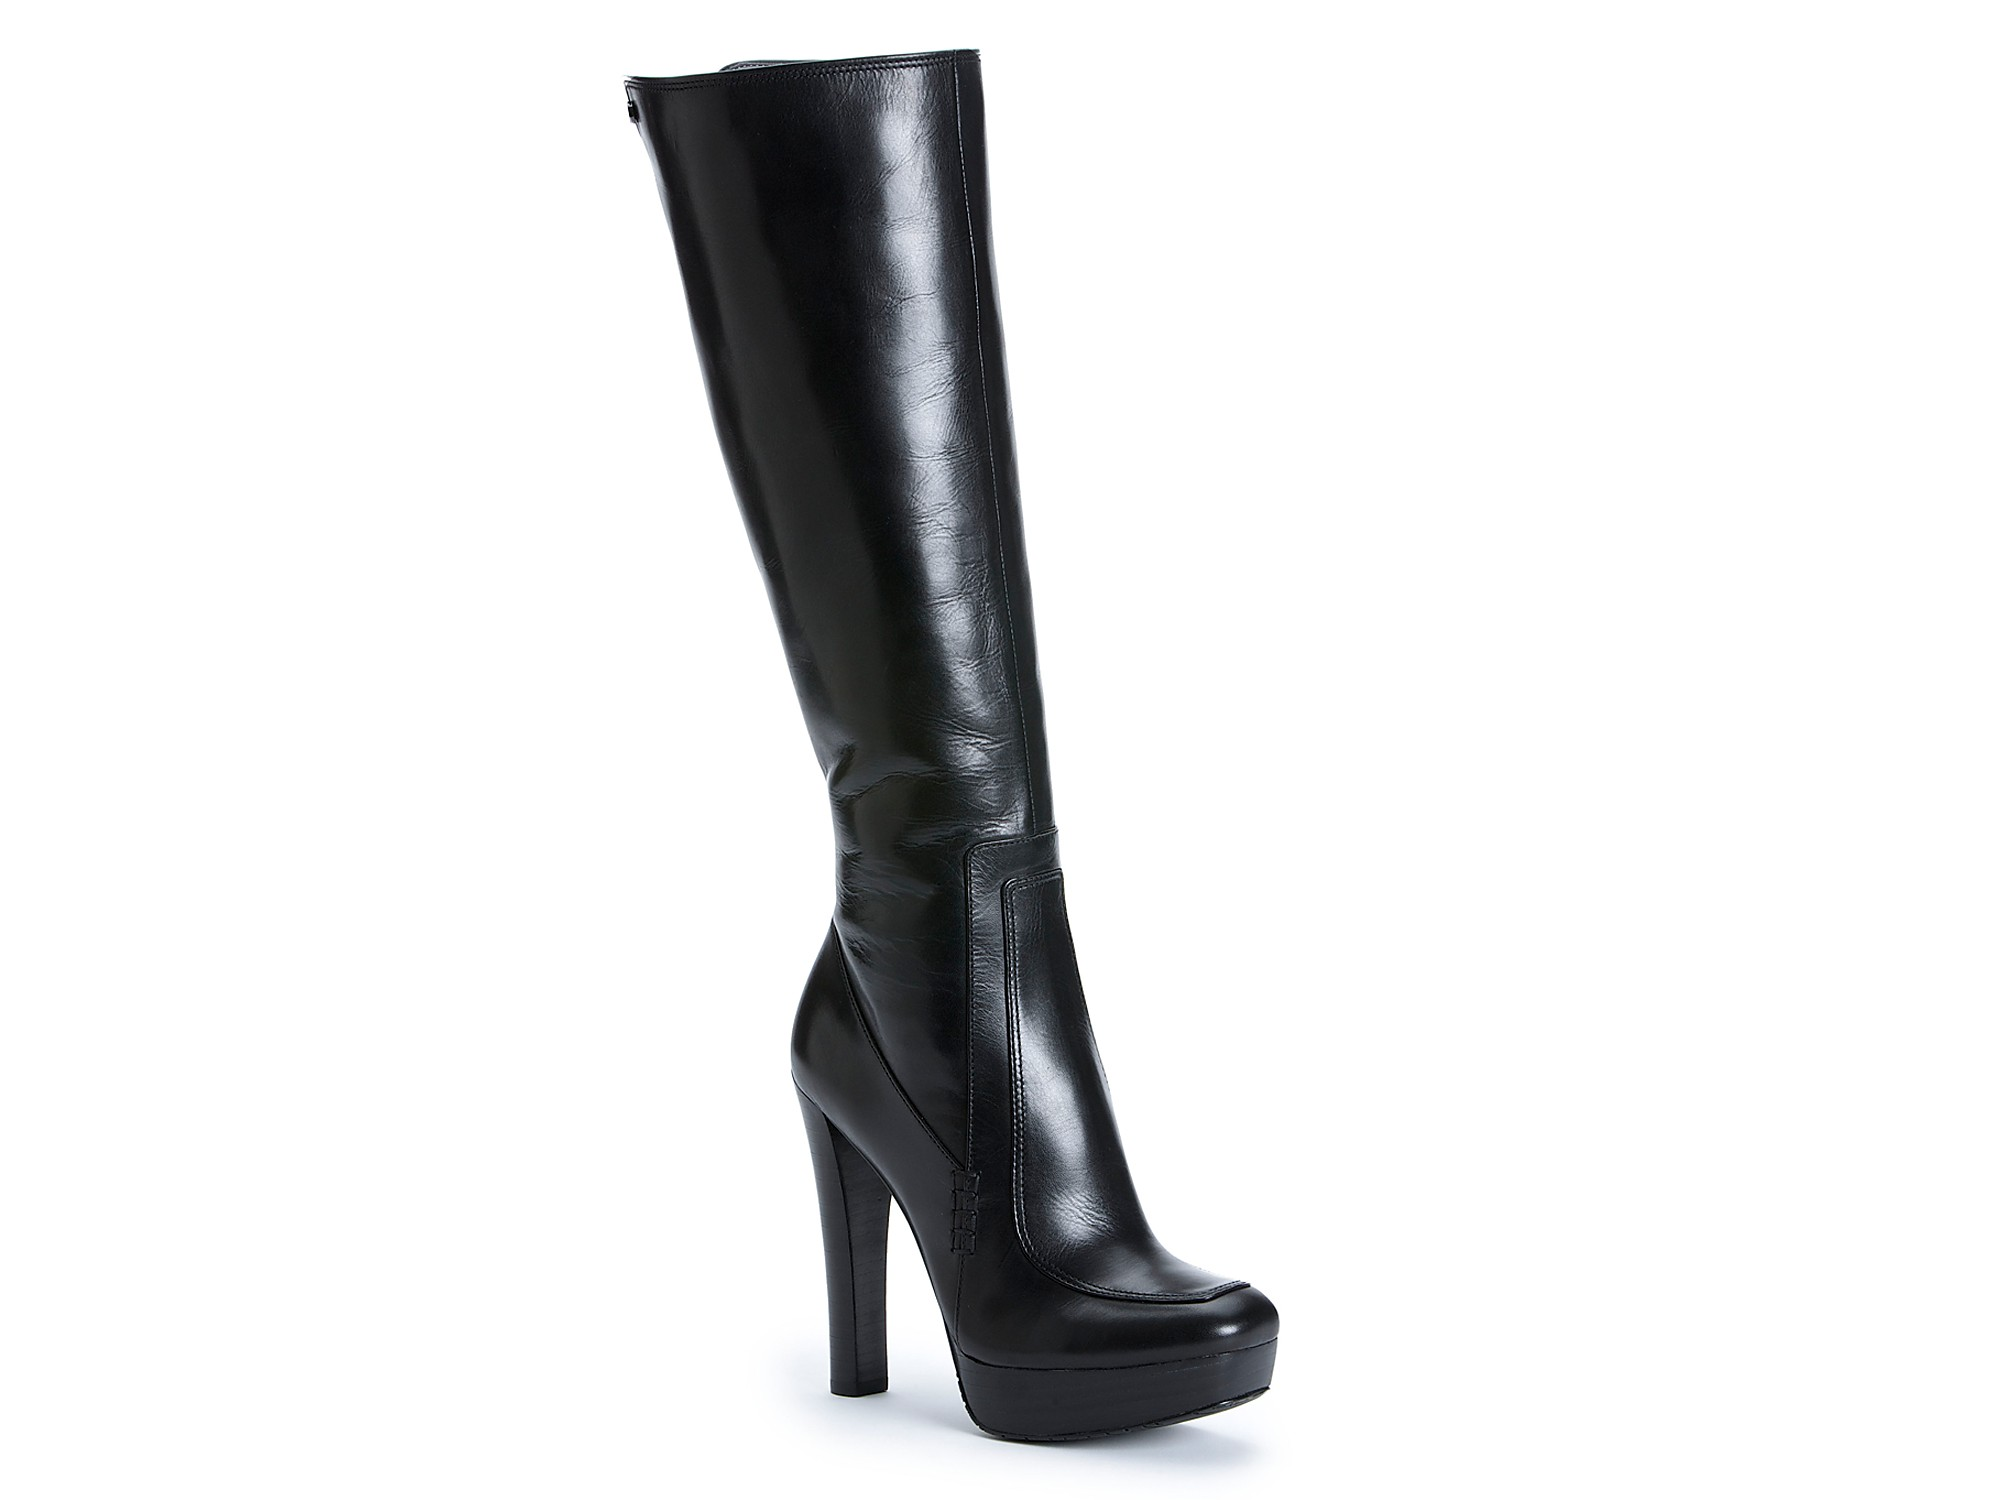 calvin klein britton high heel platform boots in black lyst